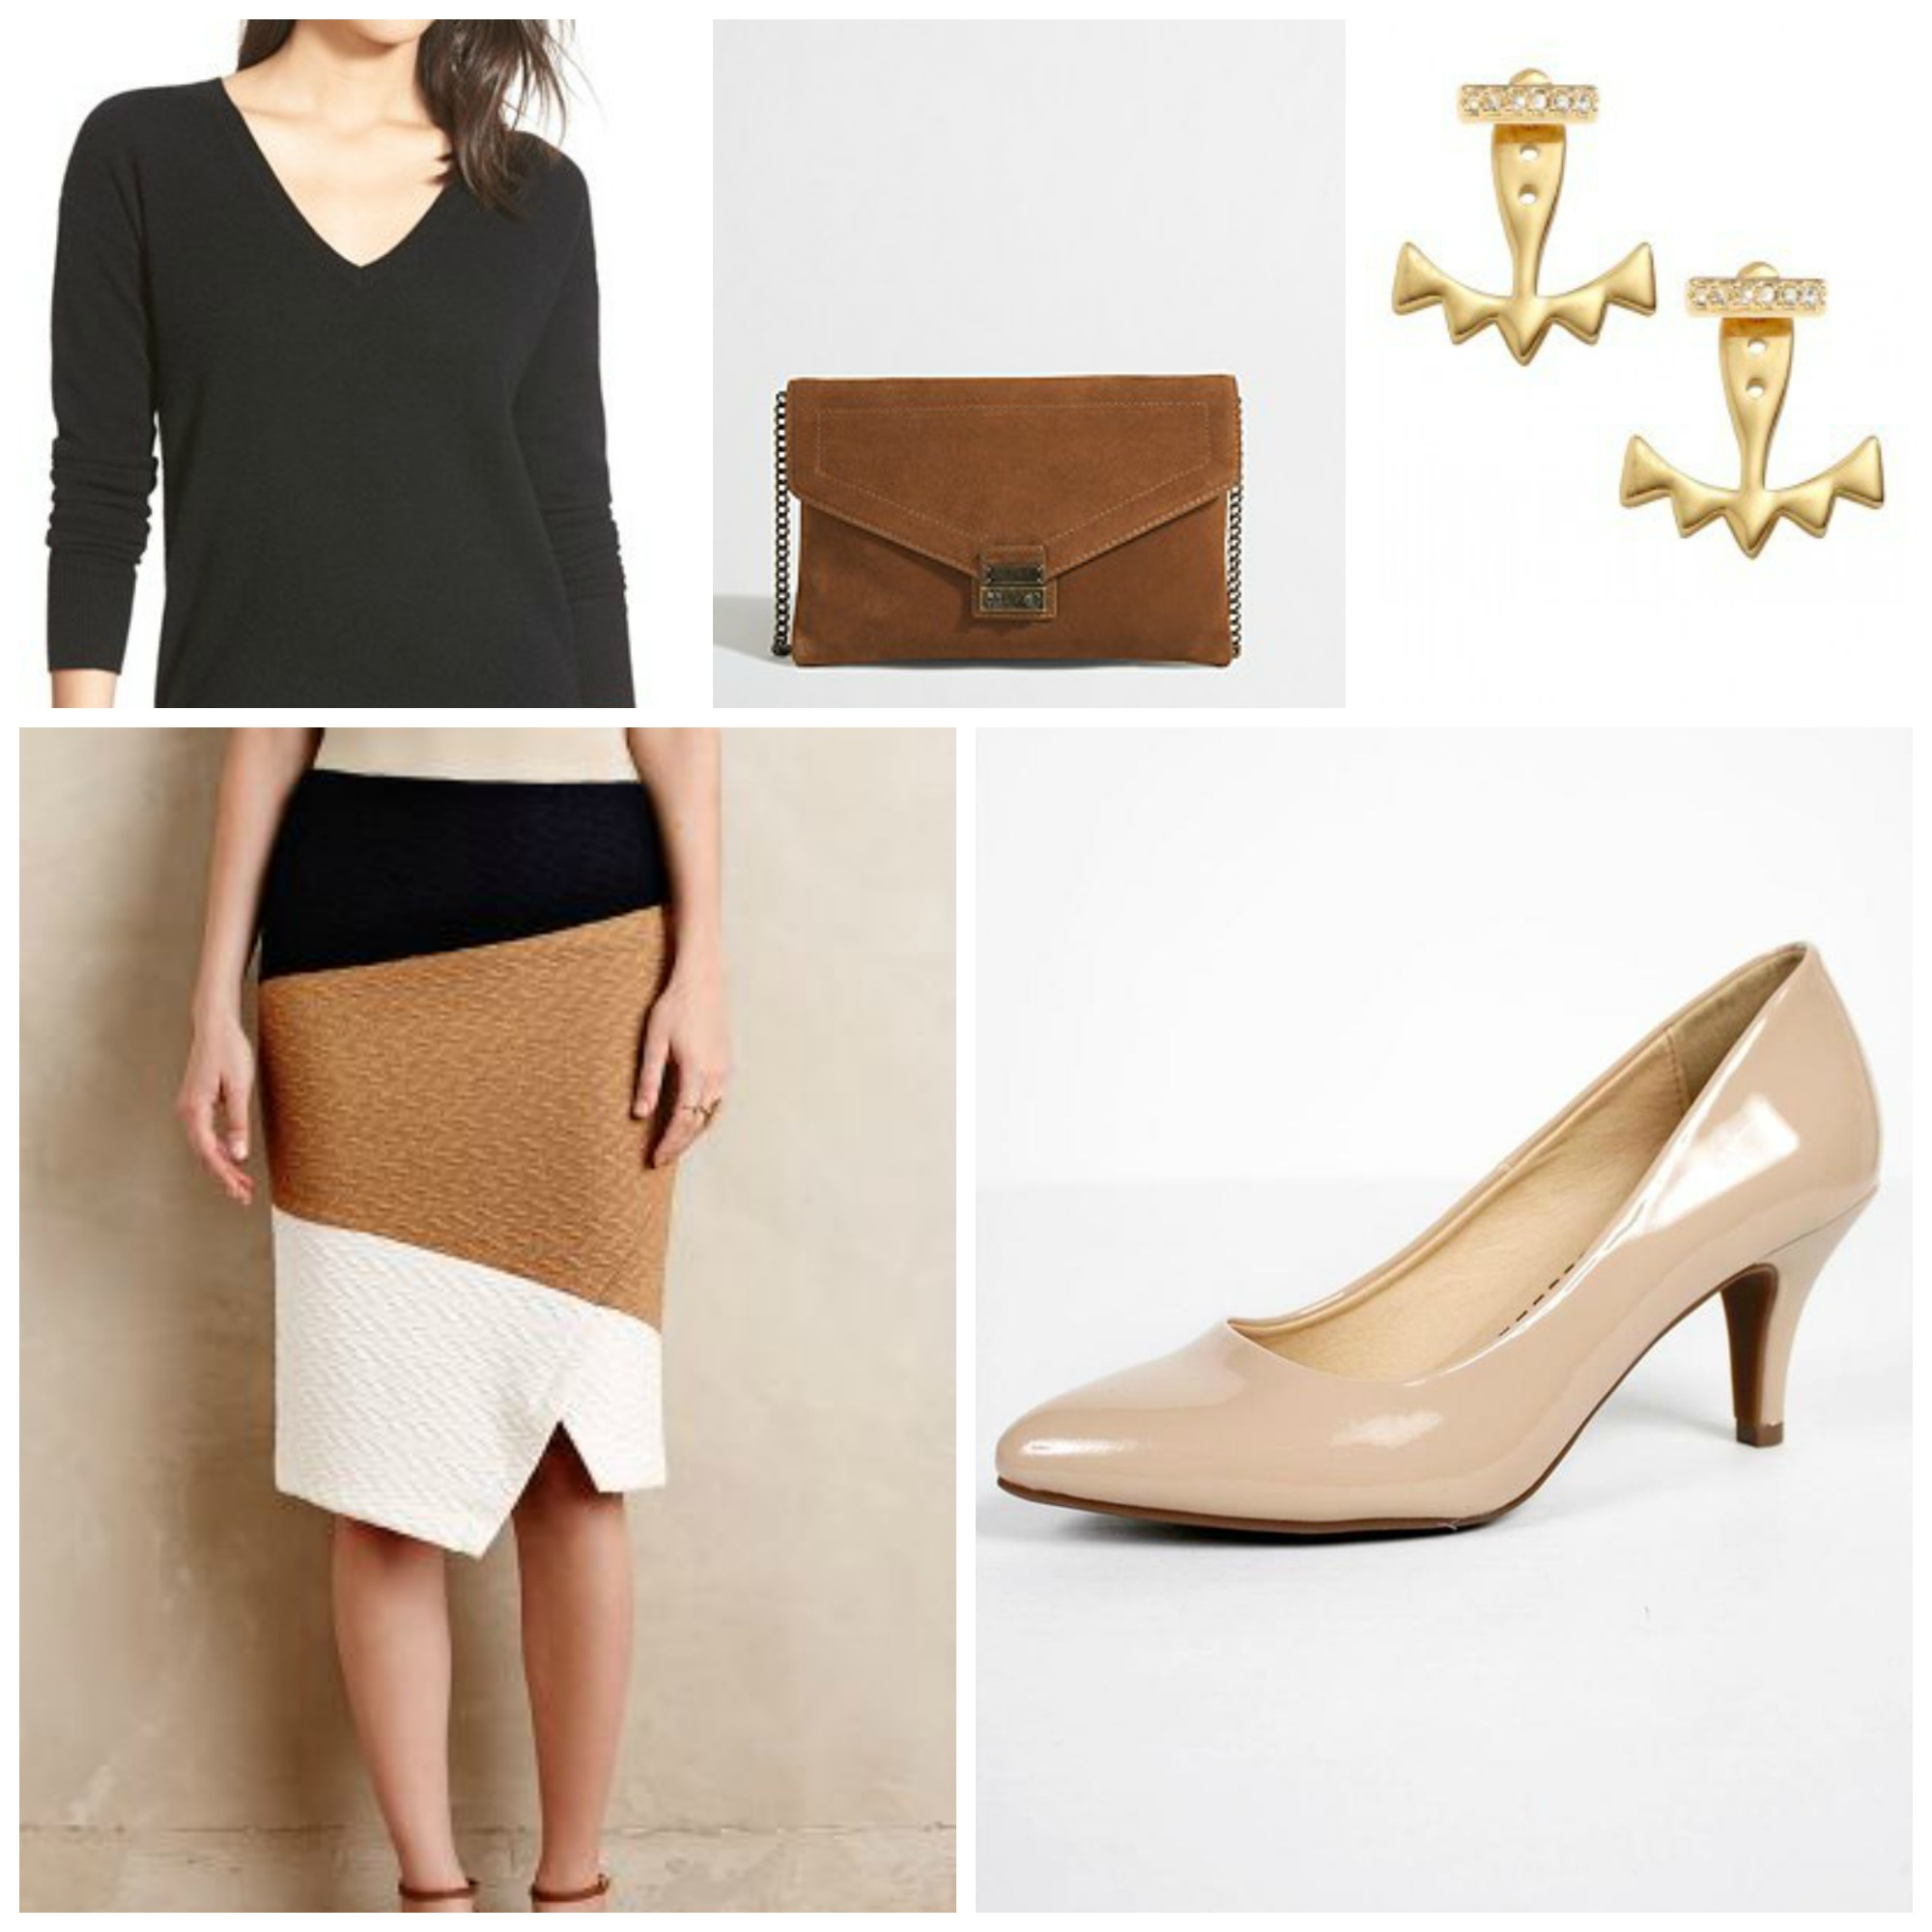 Thanksgiving Outfit #4 by www.mylifefromhome.com